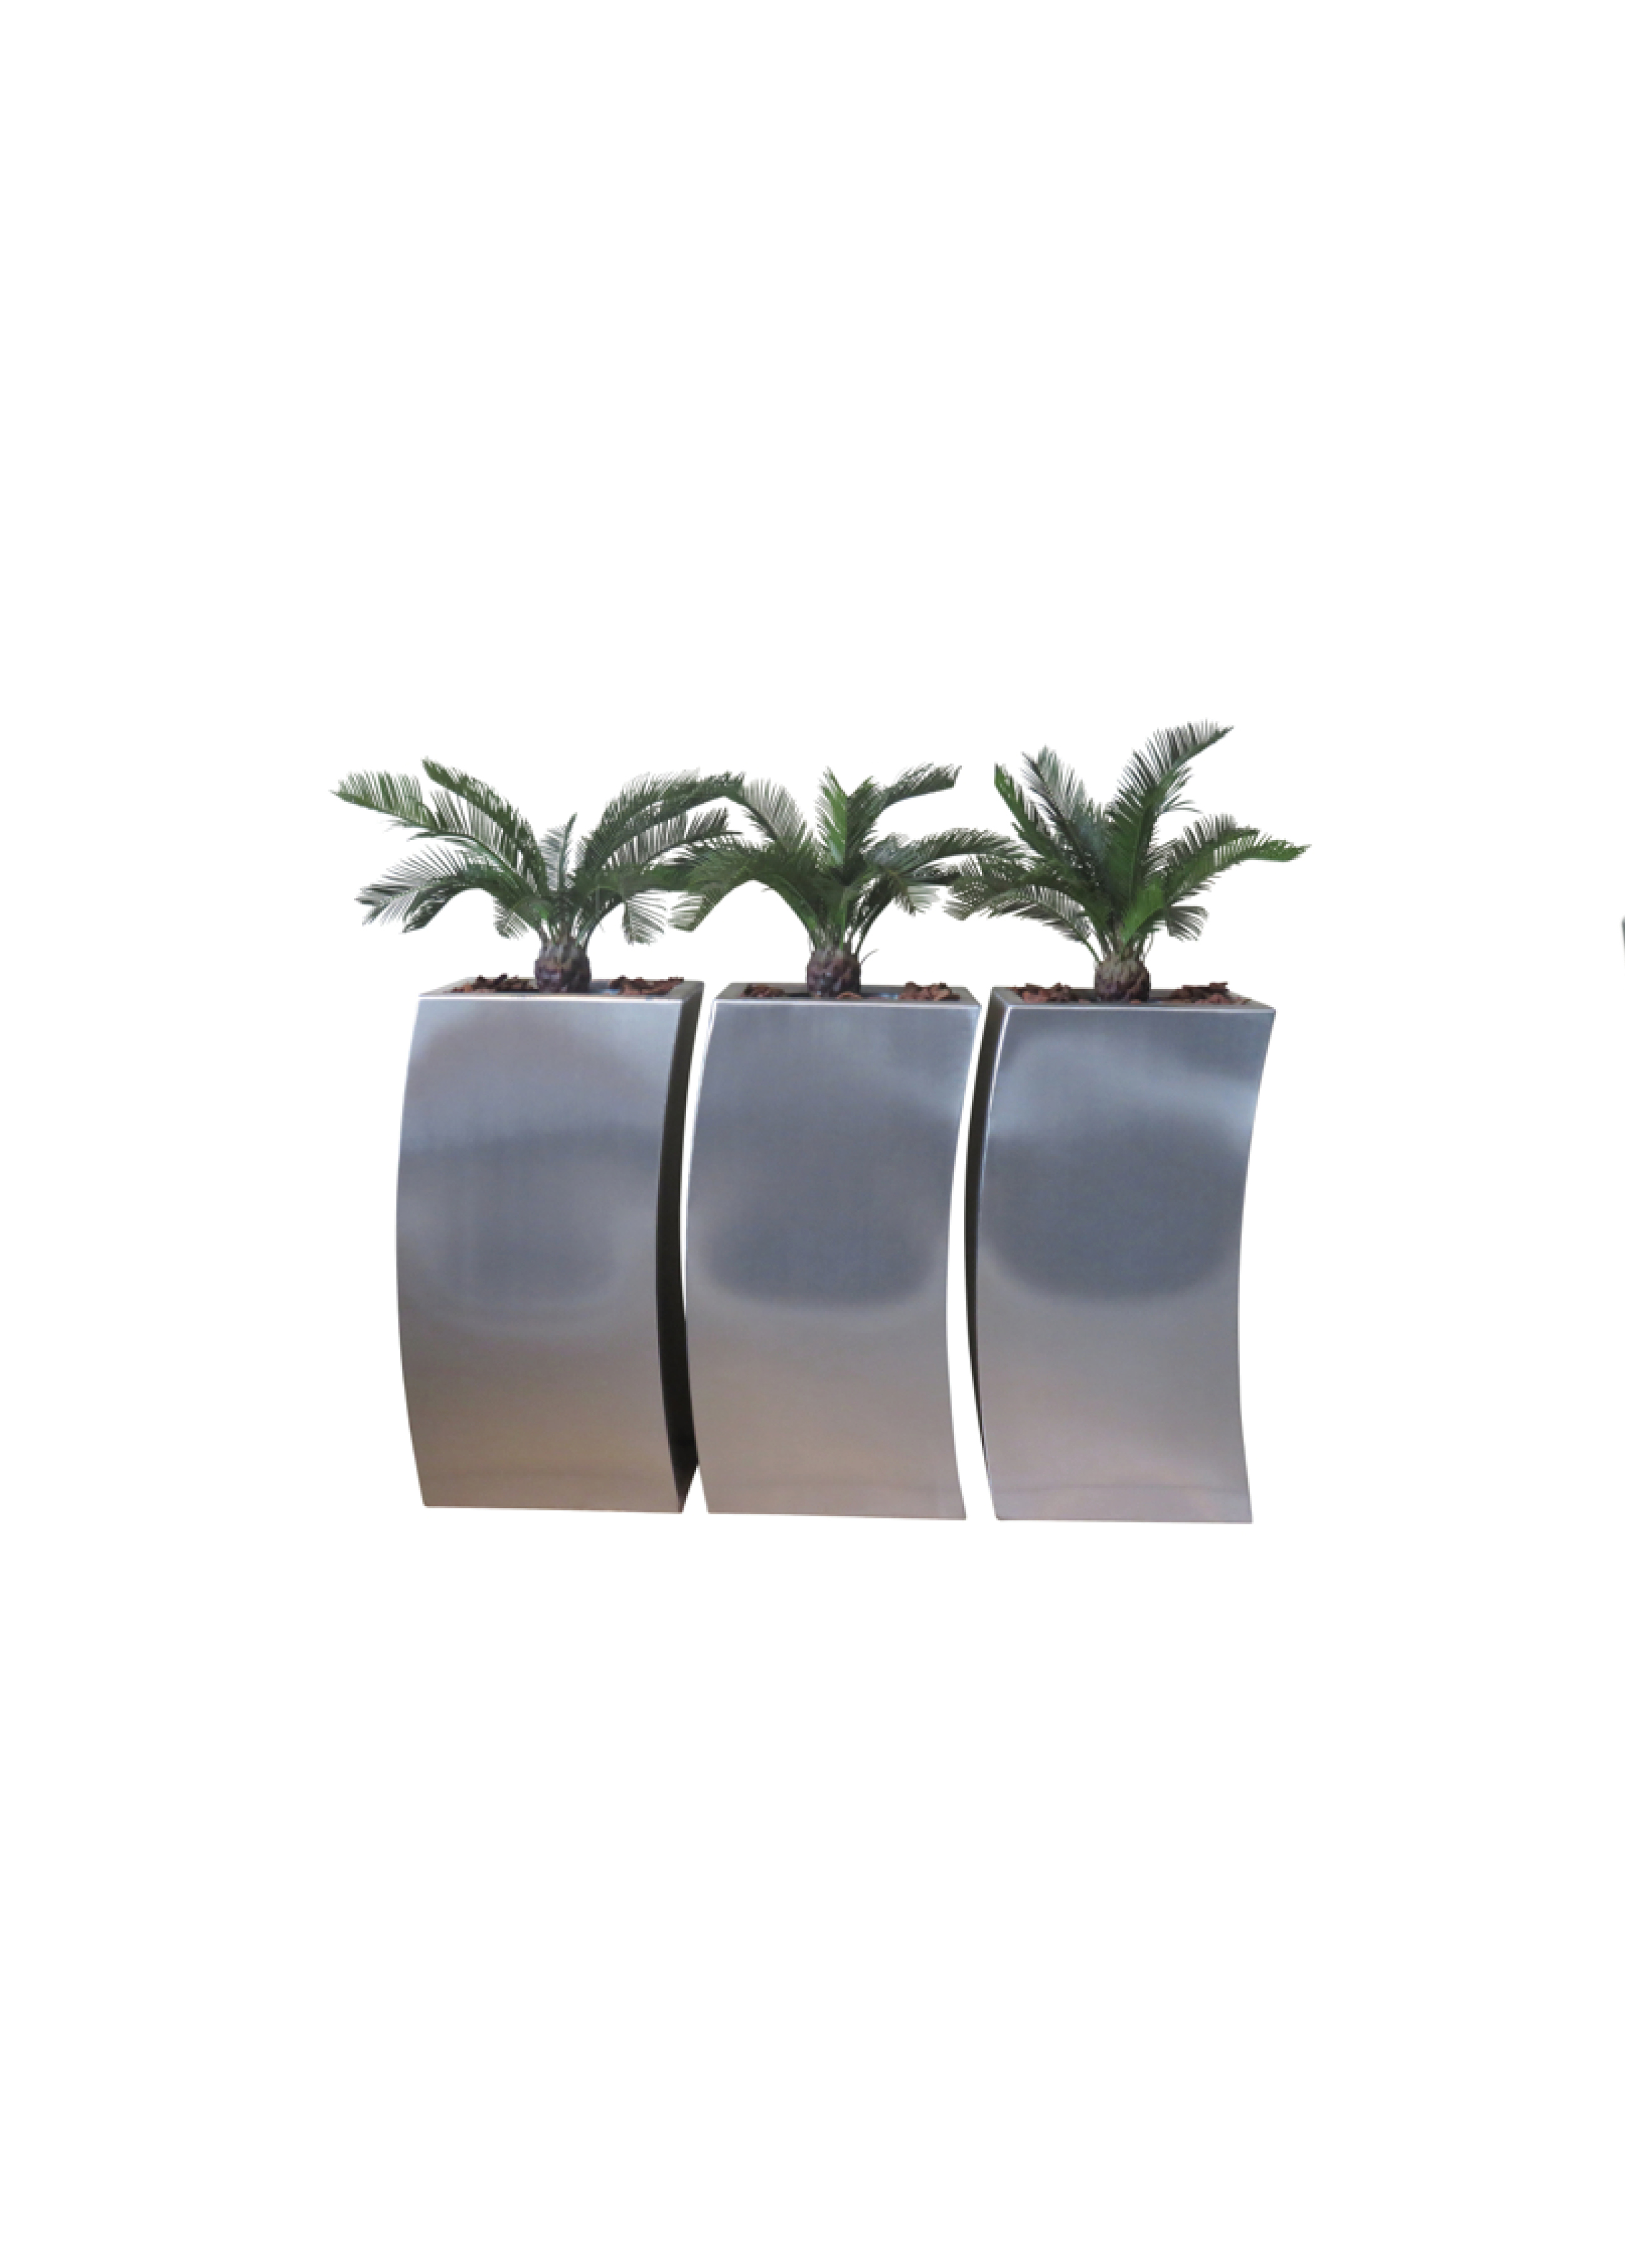 Curved Planter benches - Europlanters Curved Planter Benches  |Arched Planters